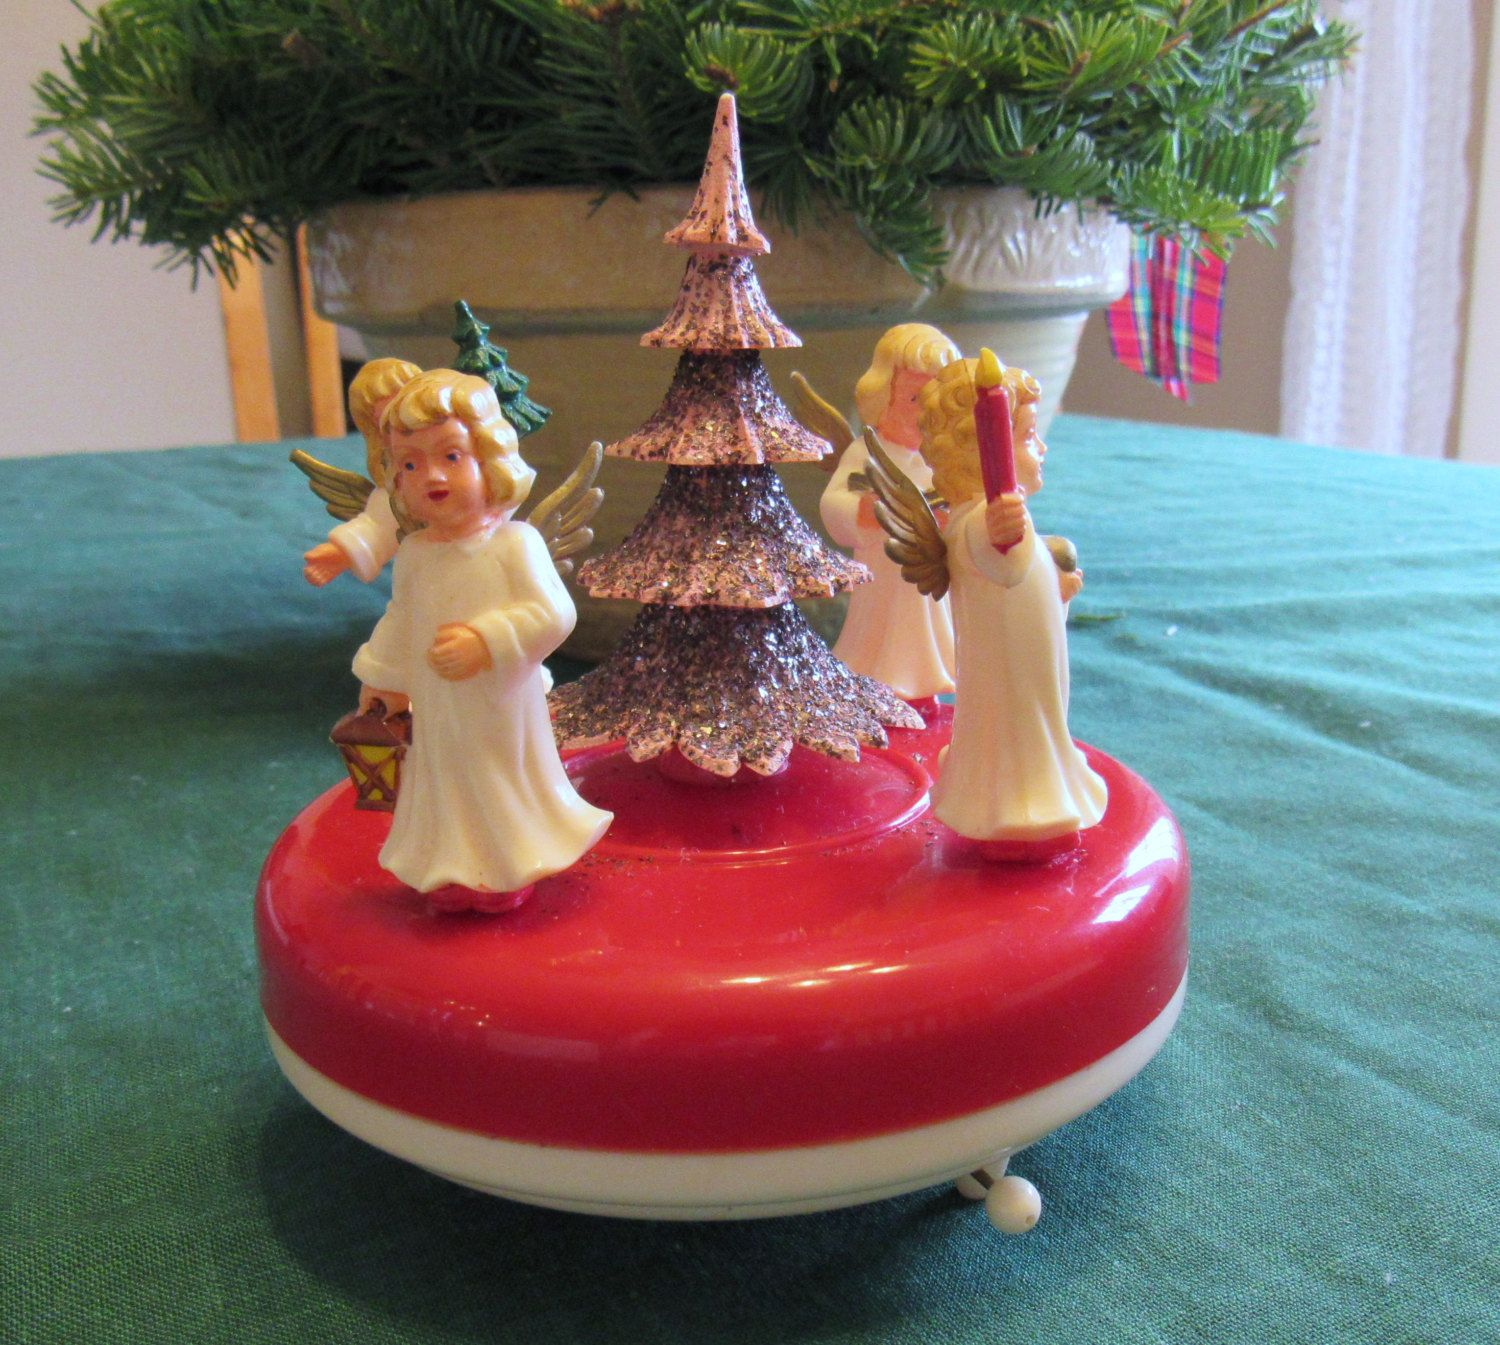 Music Box Western Germany Angels Spinning Around A Pink Christmas Tree Ges Gesch Pink Christmas Tree Pink Christmas Christmas Items